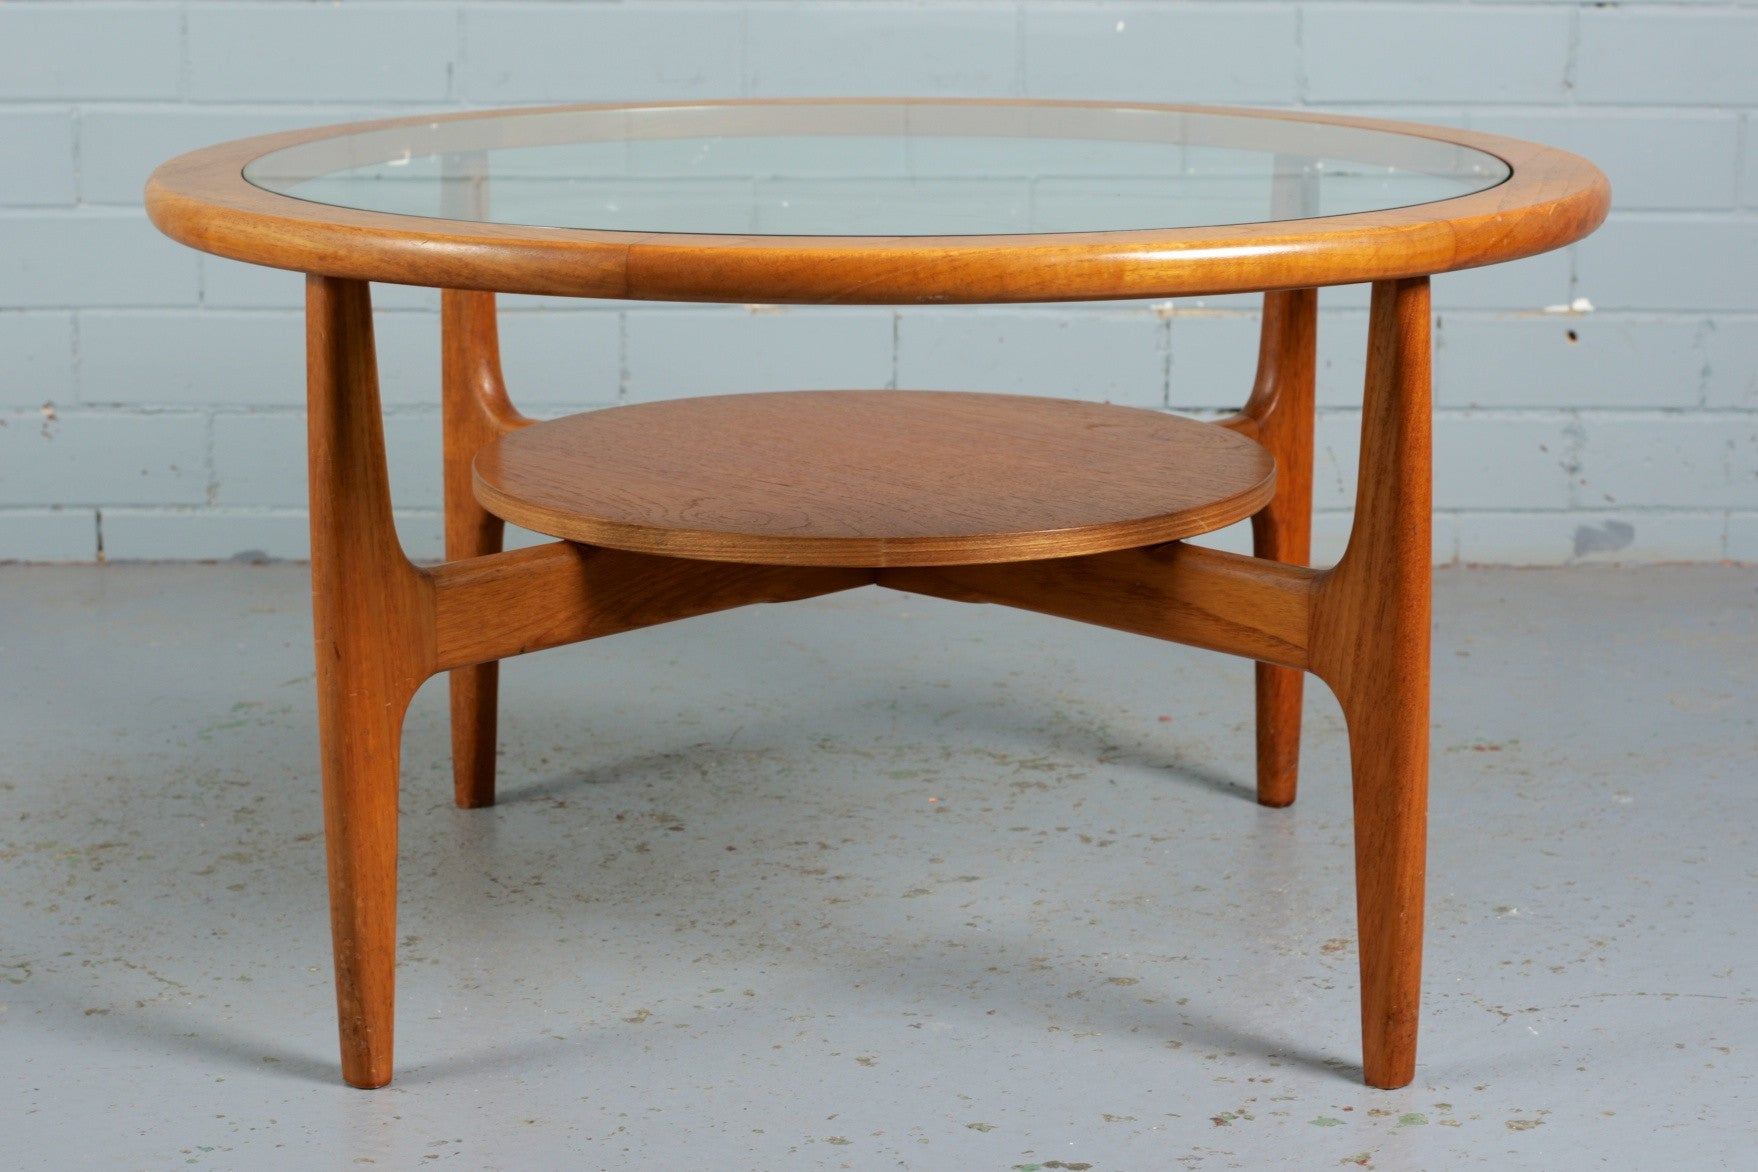 Teak and Glass Circular Coffee Table